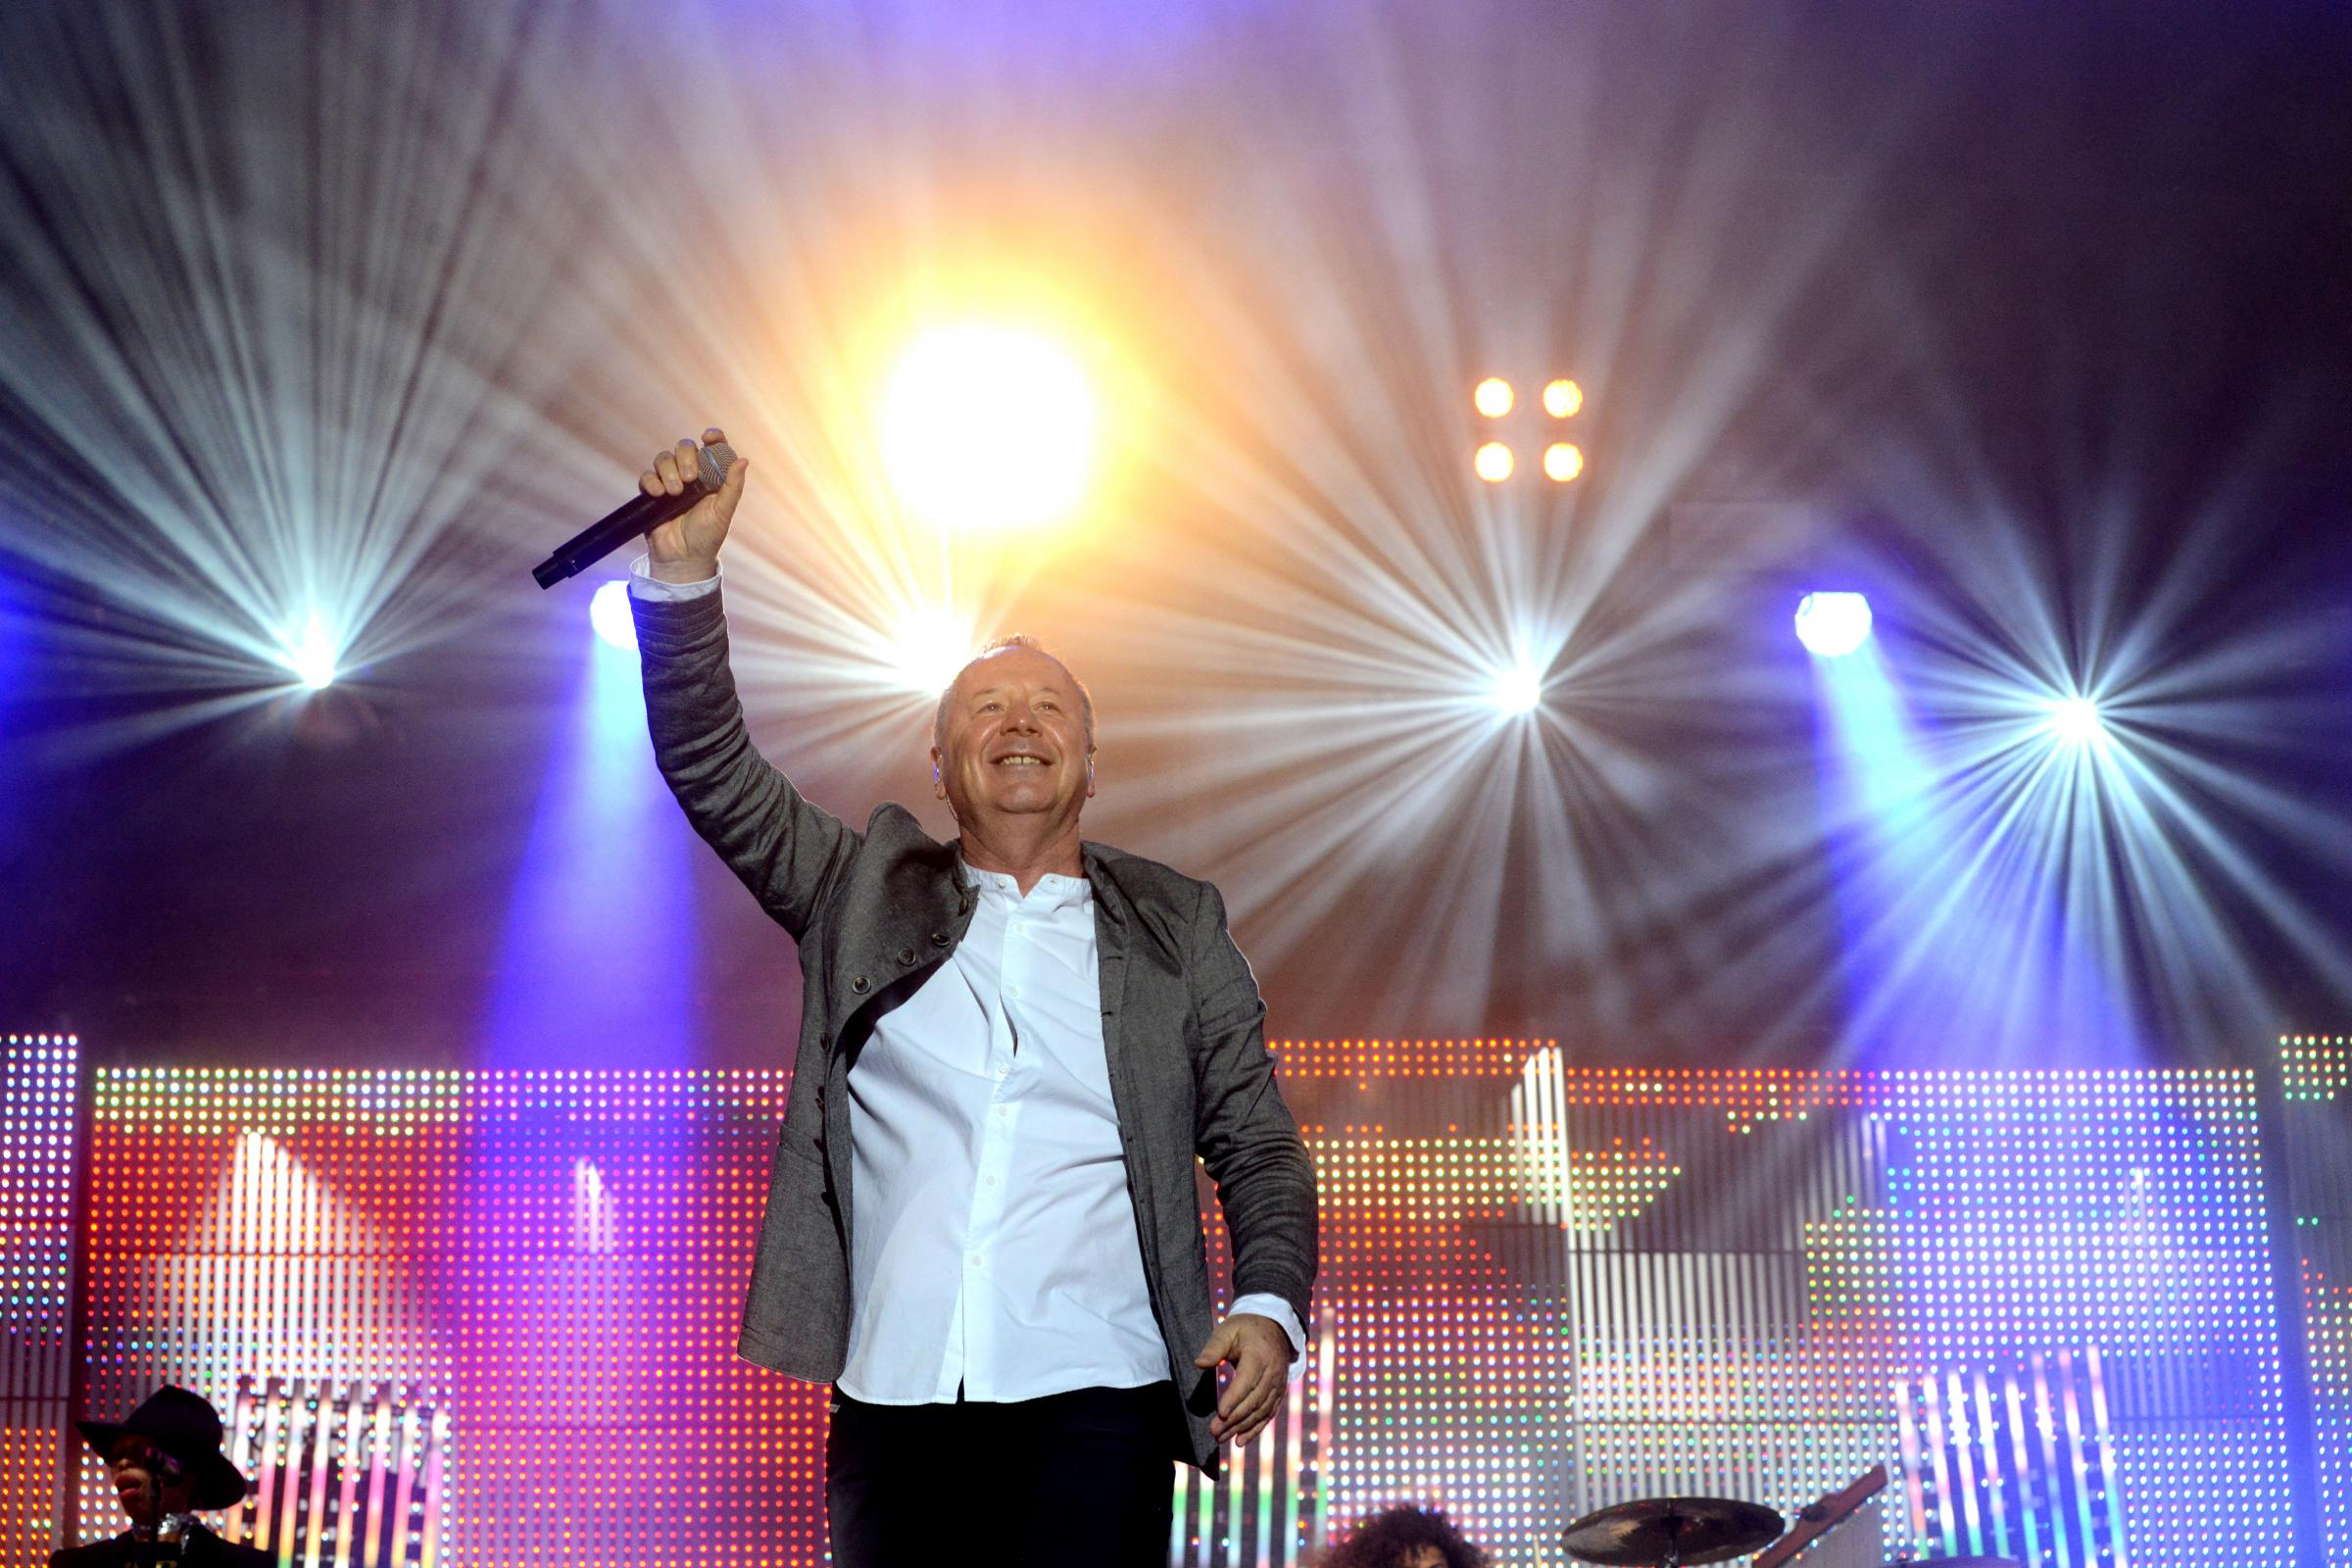 Simple Minds singer's brother jailed for stalking